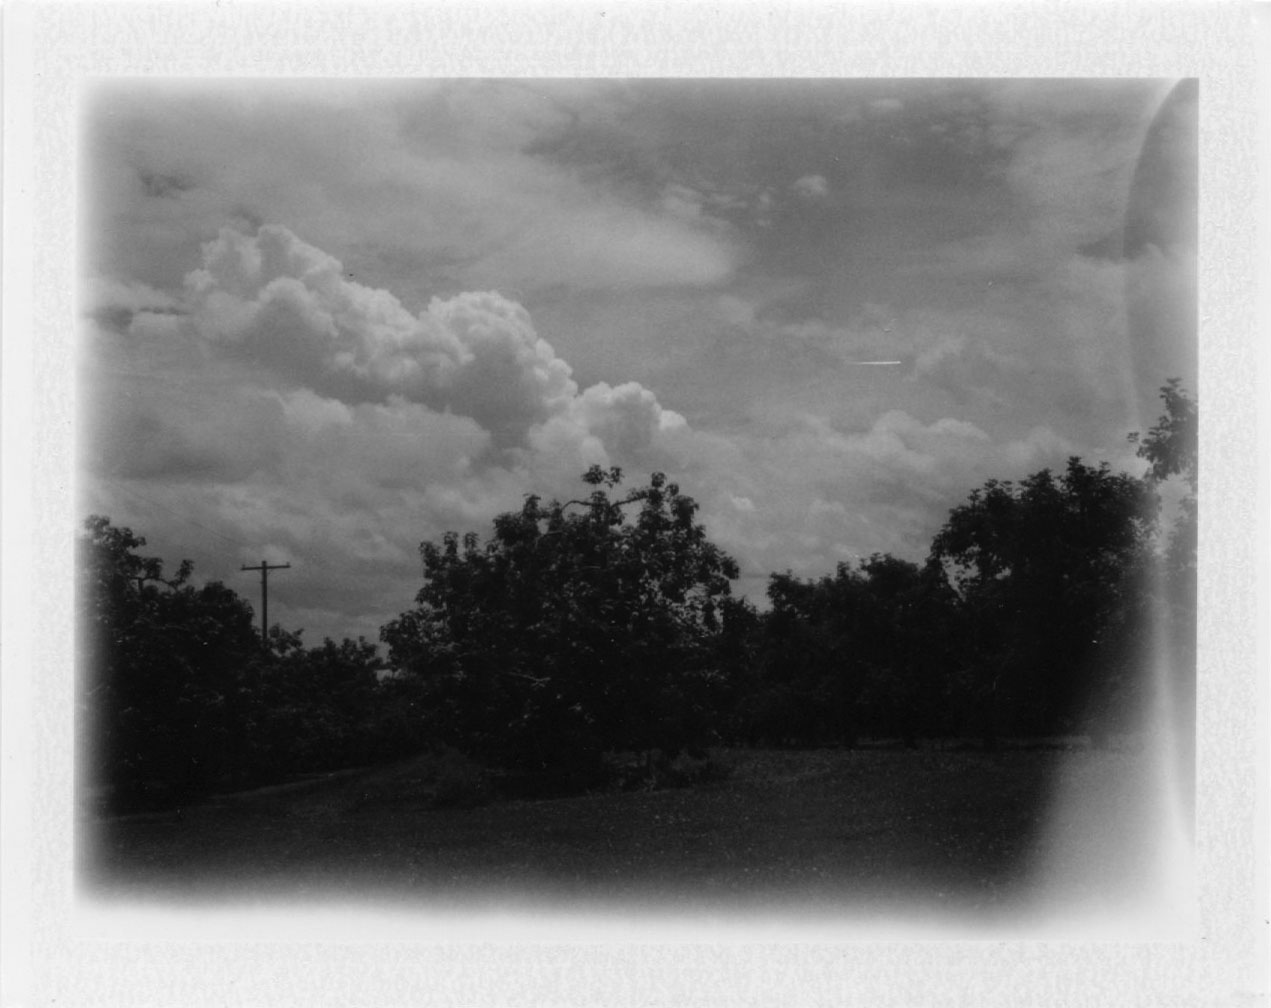 orchard_clouds.jpg